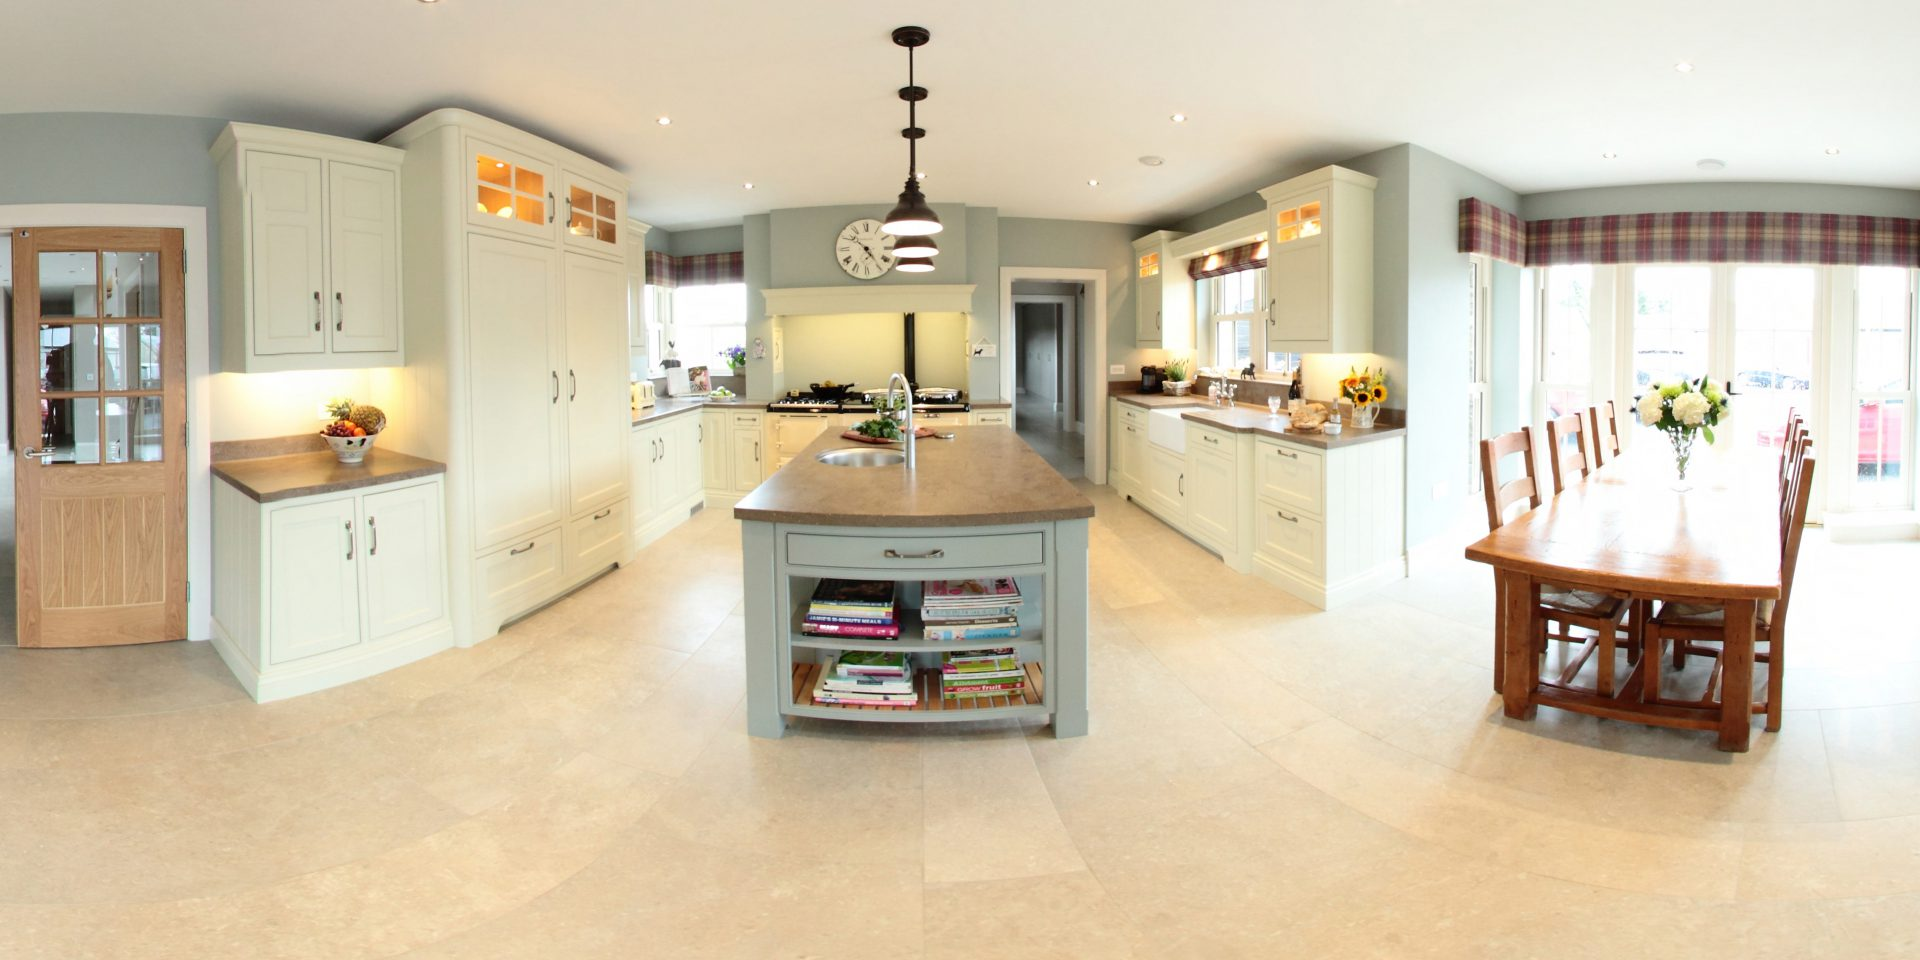 frazer kitchen 360 degree image